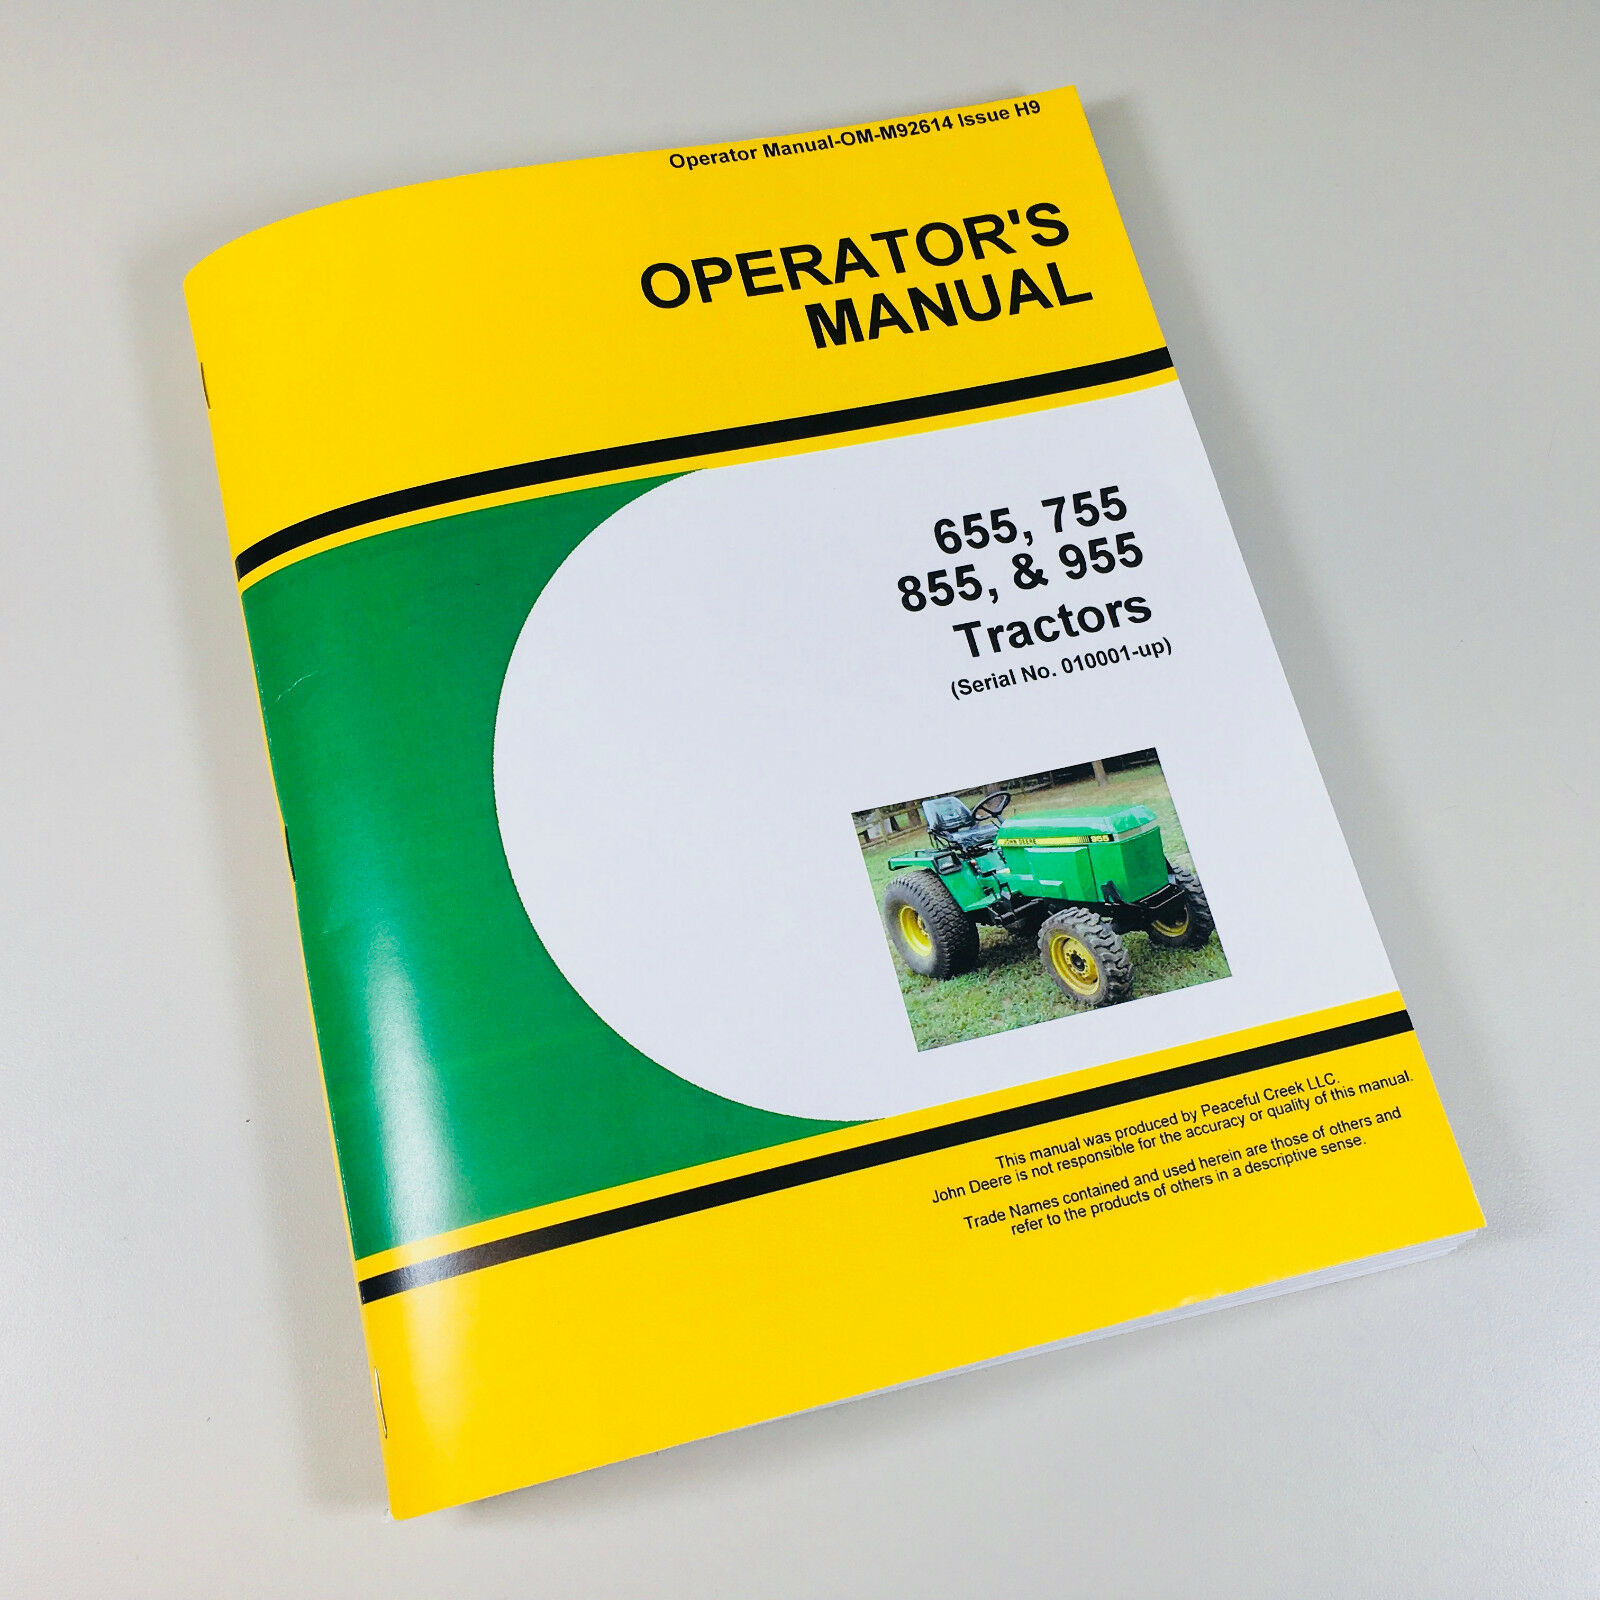 OPERATORS MANUAL FOR JD TRACTOR 655 755 855 955. Complete  Operations/Controls/Maintenance